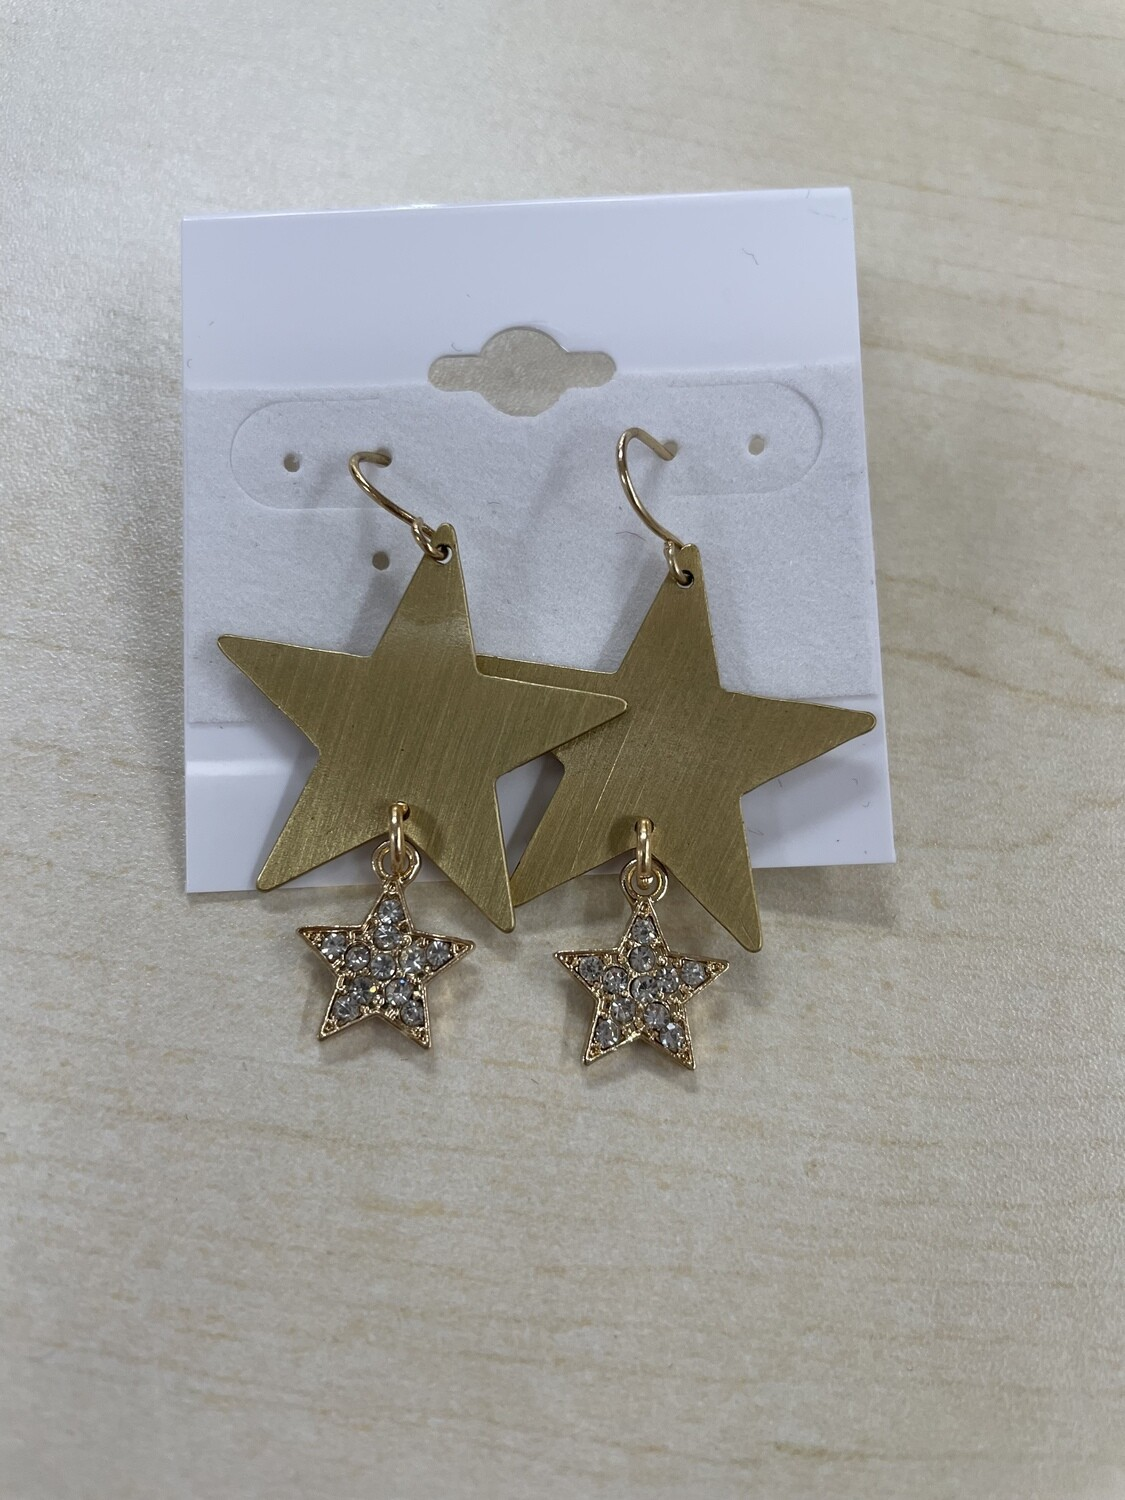 Matte Gold Large Star with Small Rhinestone Star Earrings